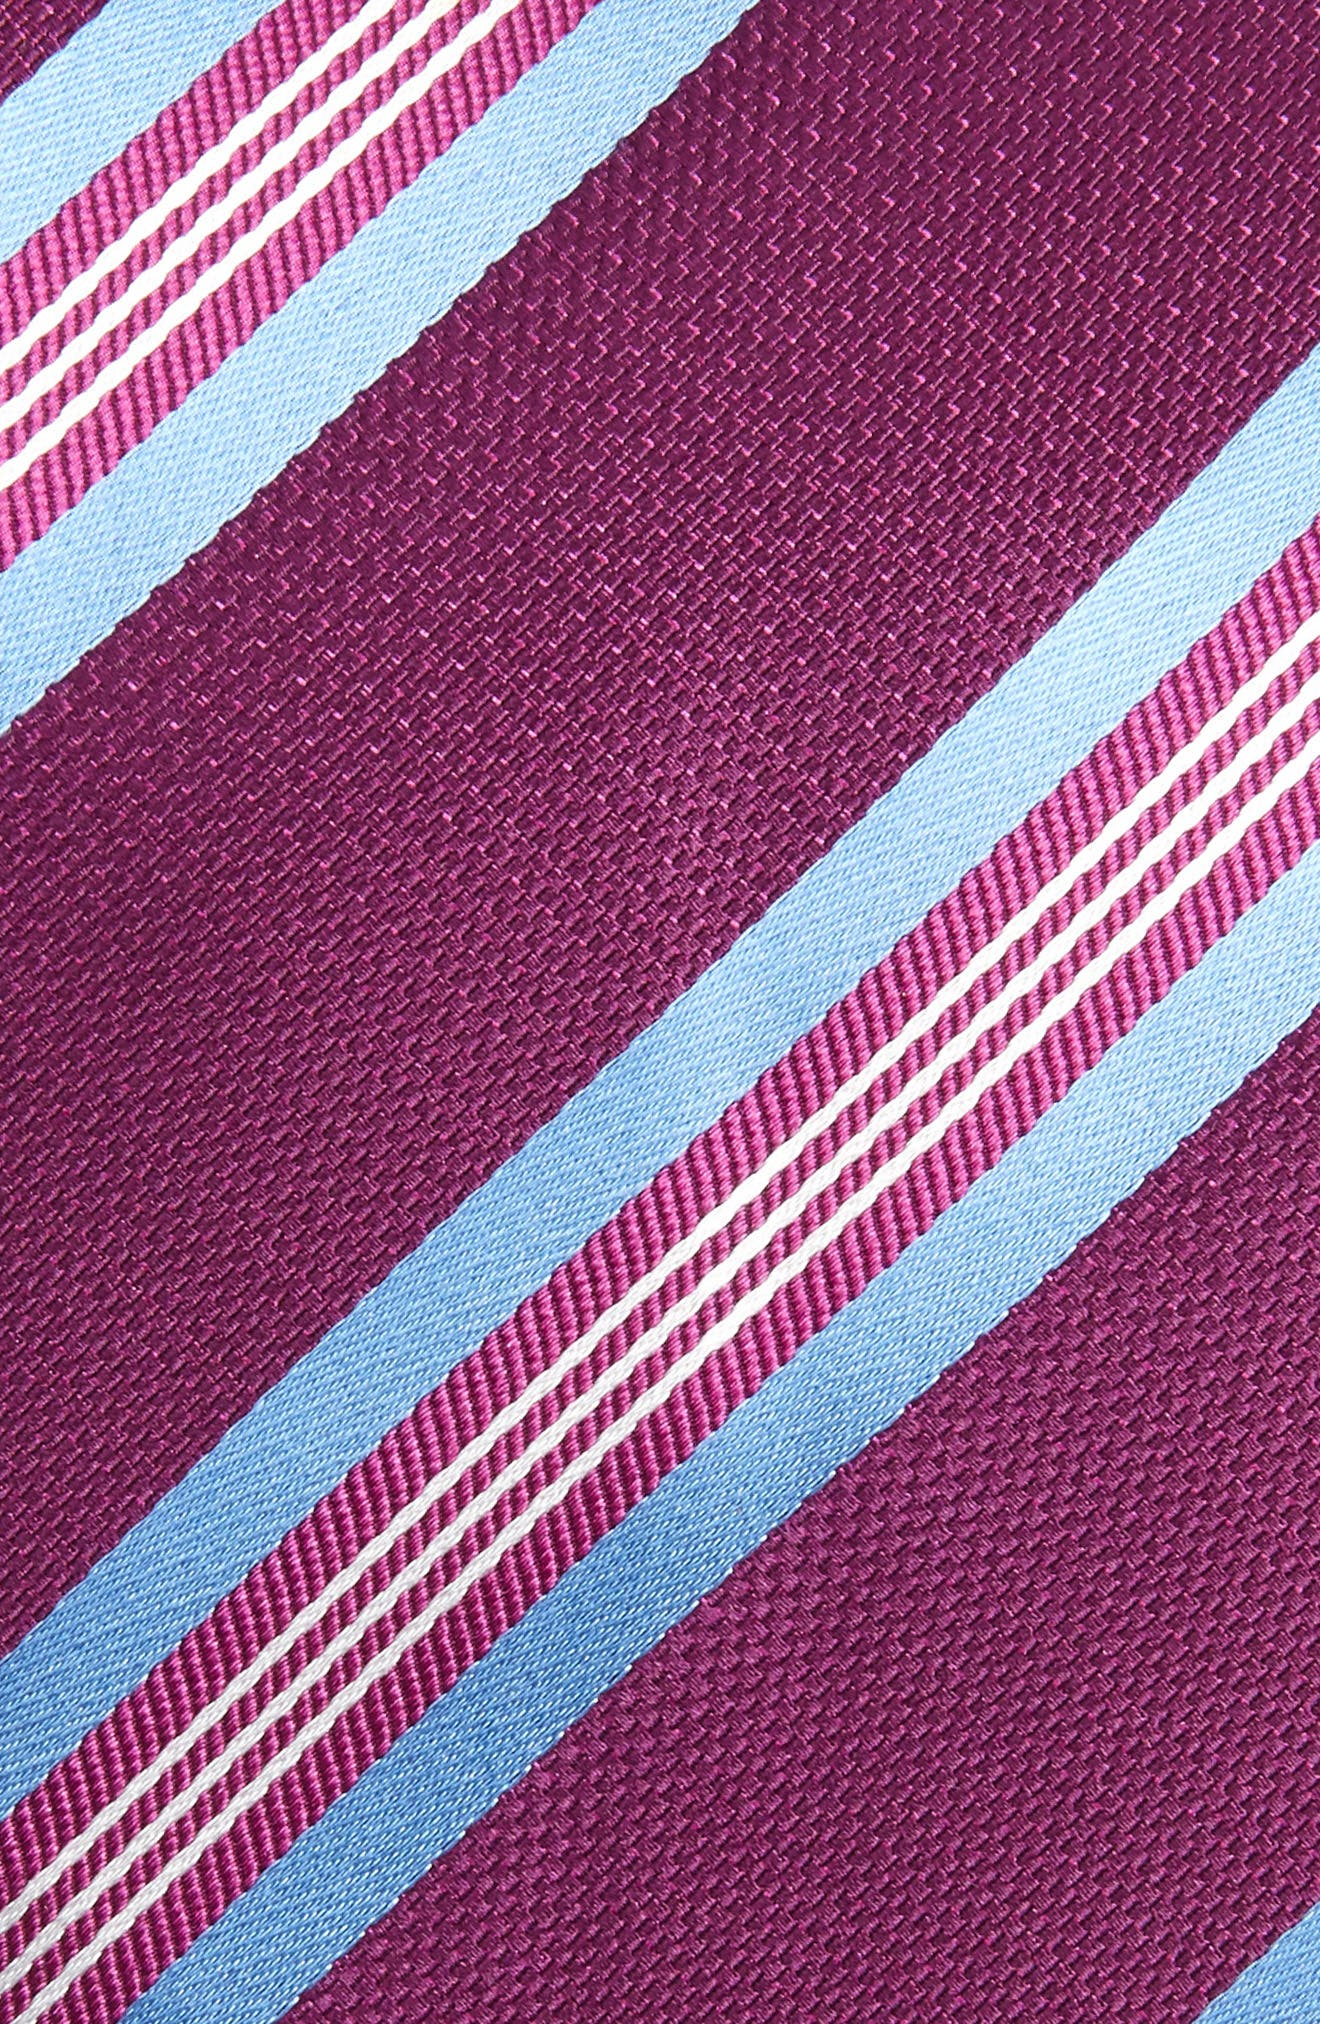 Striped Silk Tie,                             Alternate thumbnail 2, color,                             Berry